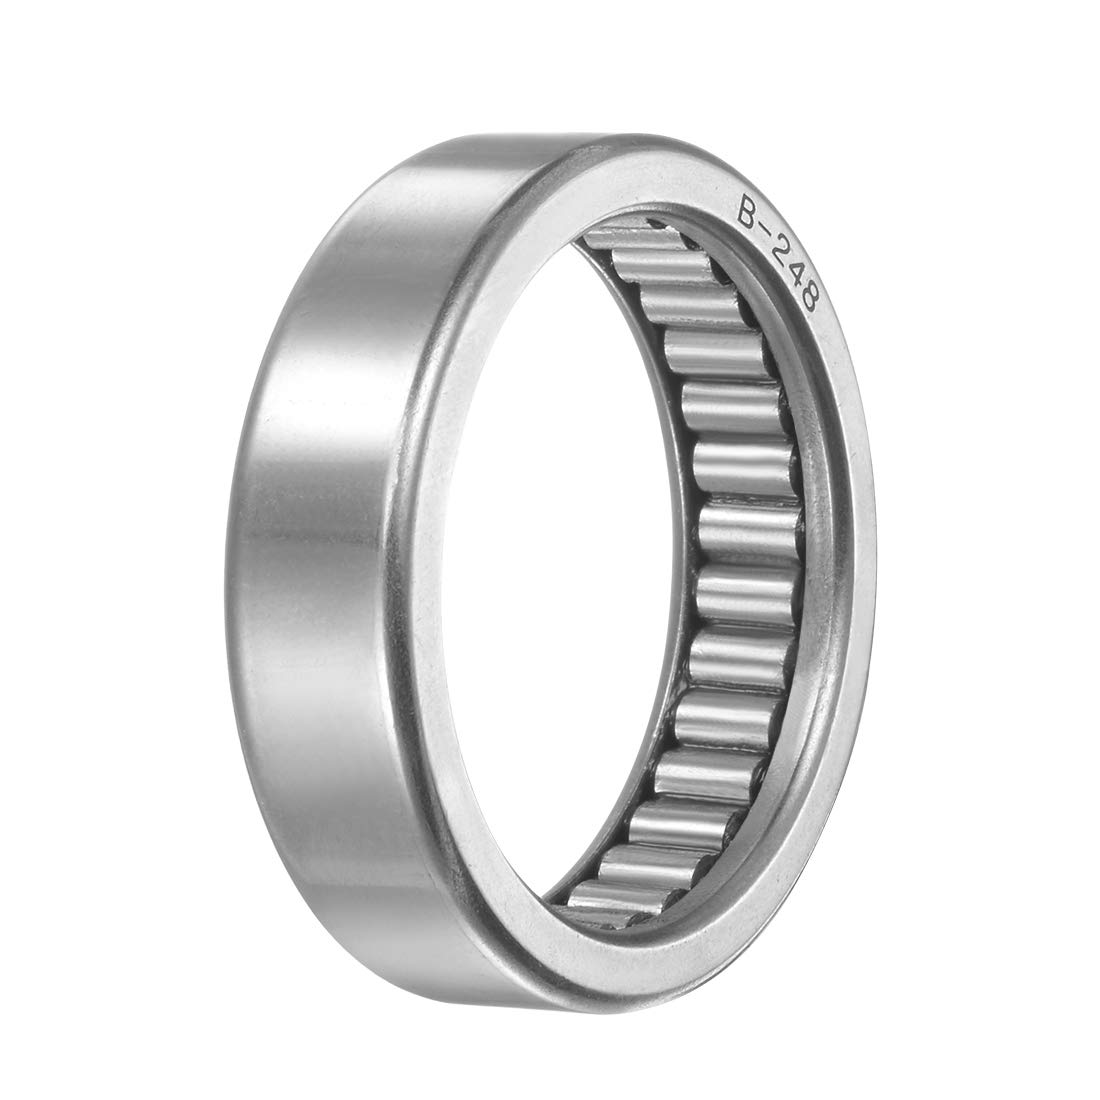 Open Full Complement Drawn Cup uxcell B248 Needle Roller Bearings 1-7//8-inch OD 1//2-inch Width 7830N Static Load 4780N Dynamic Load 4300Rpm Limiting Speed 1-1//2-inch I.D